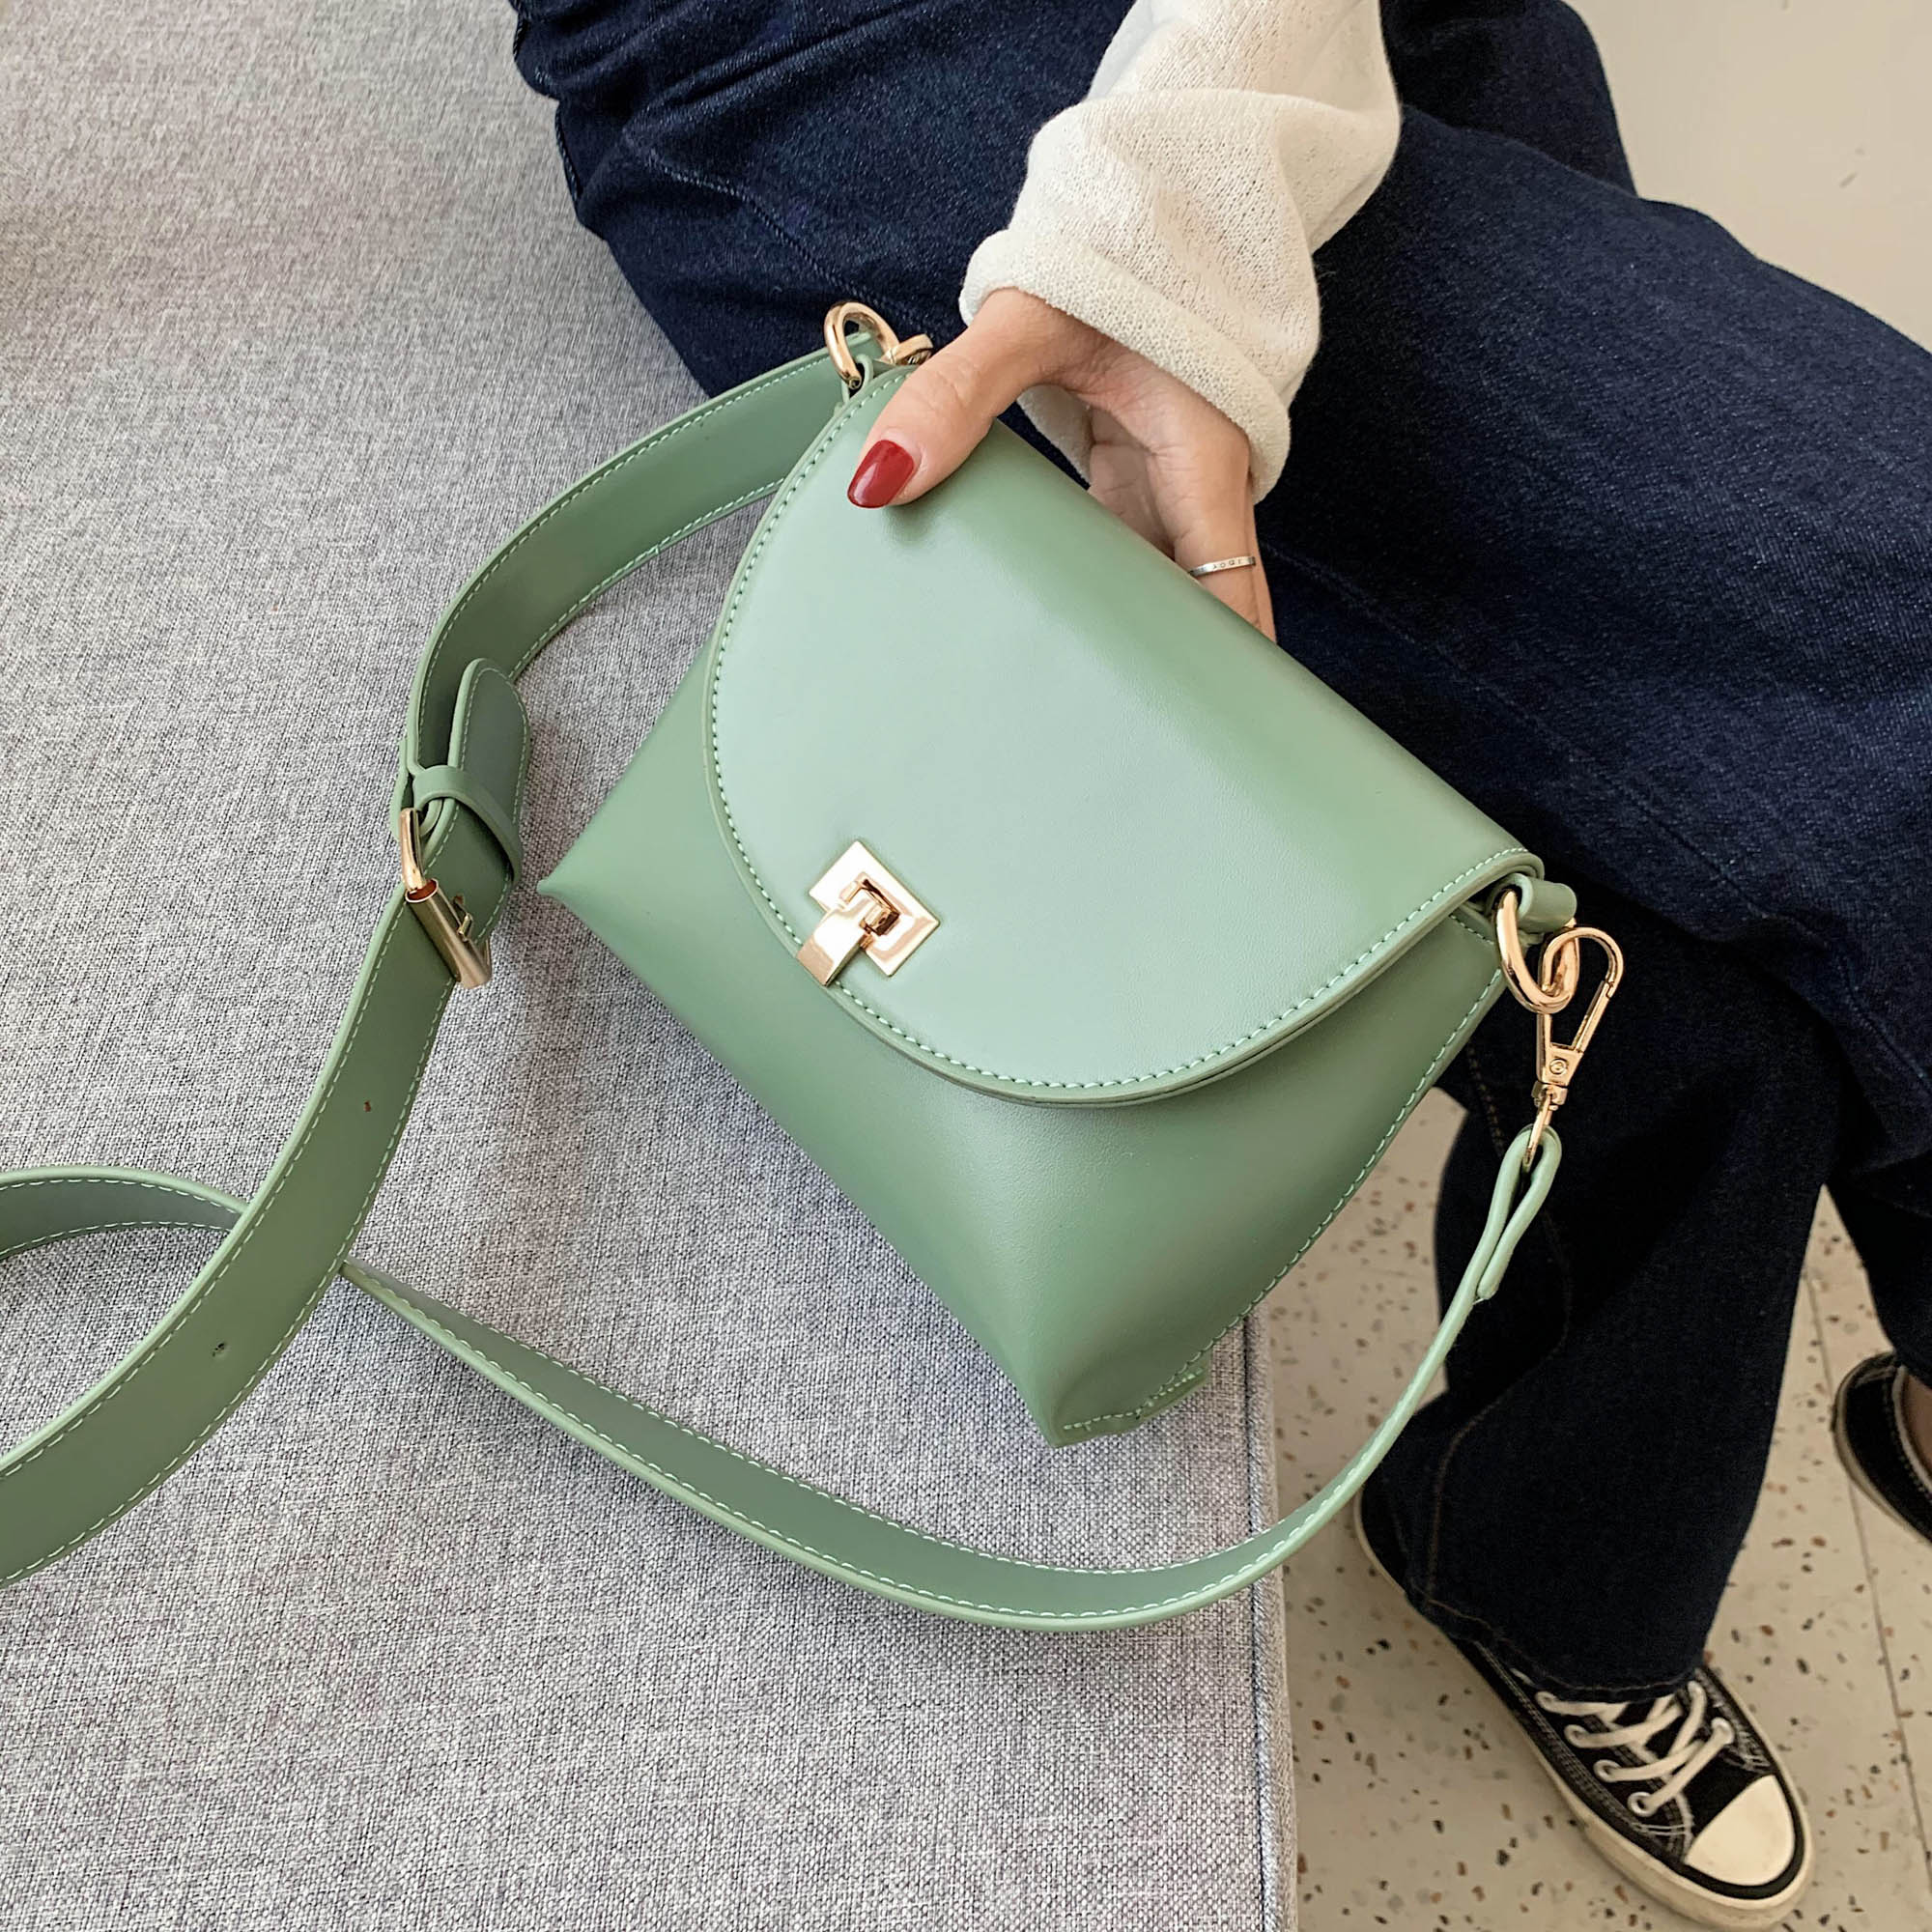 Simple Style Pu Leather Crossbody Bags For Women 2020 Small Lady Shoulder Messenger Bag Female Phone Handbags And Purses